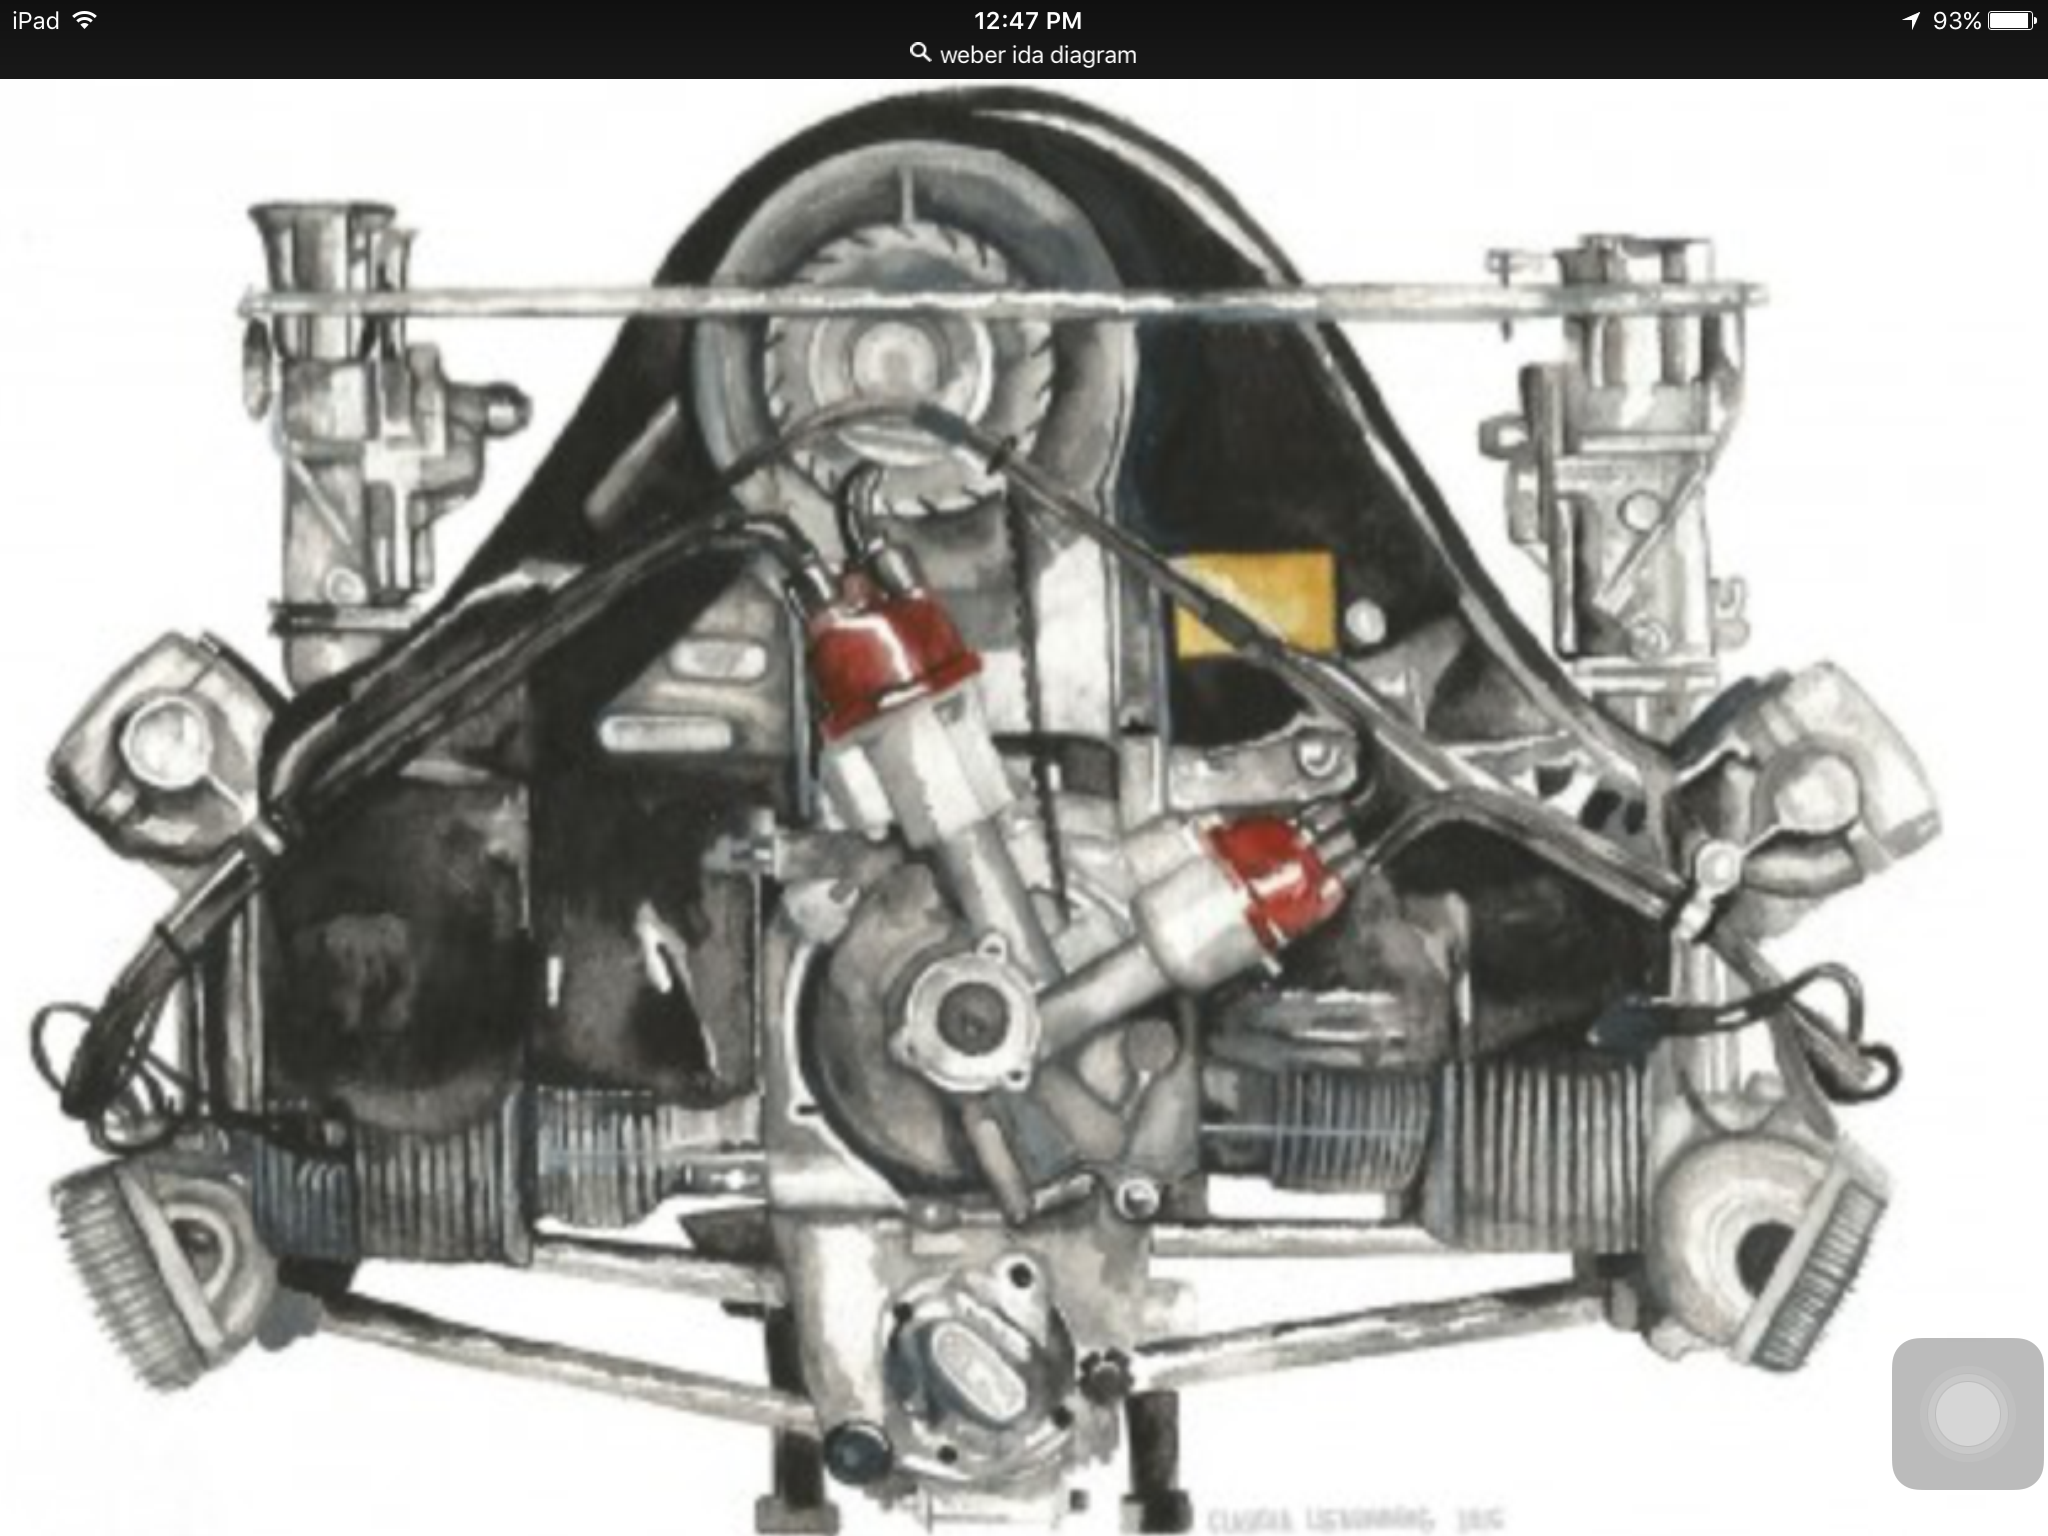 1964 Porsche 356 Wiring Diagram Will Be A Thing 1976 912e Engine 4 Cam Cutaway Schematic Ac 911 Diagrams 1991